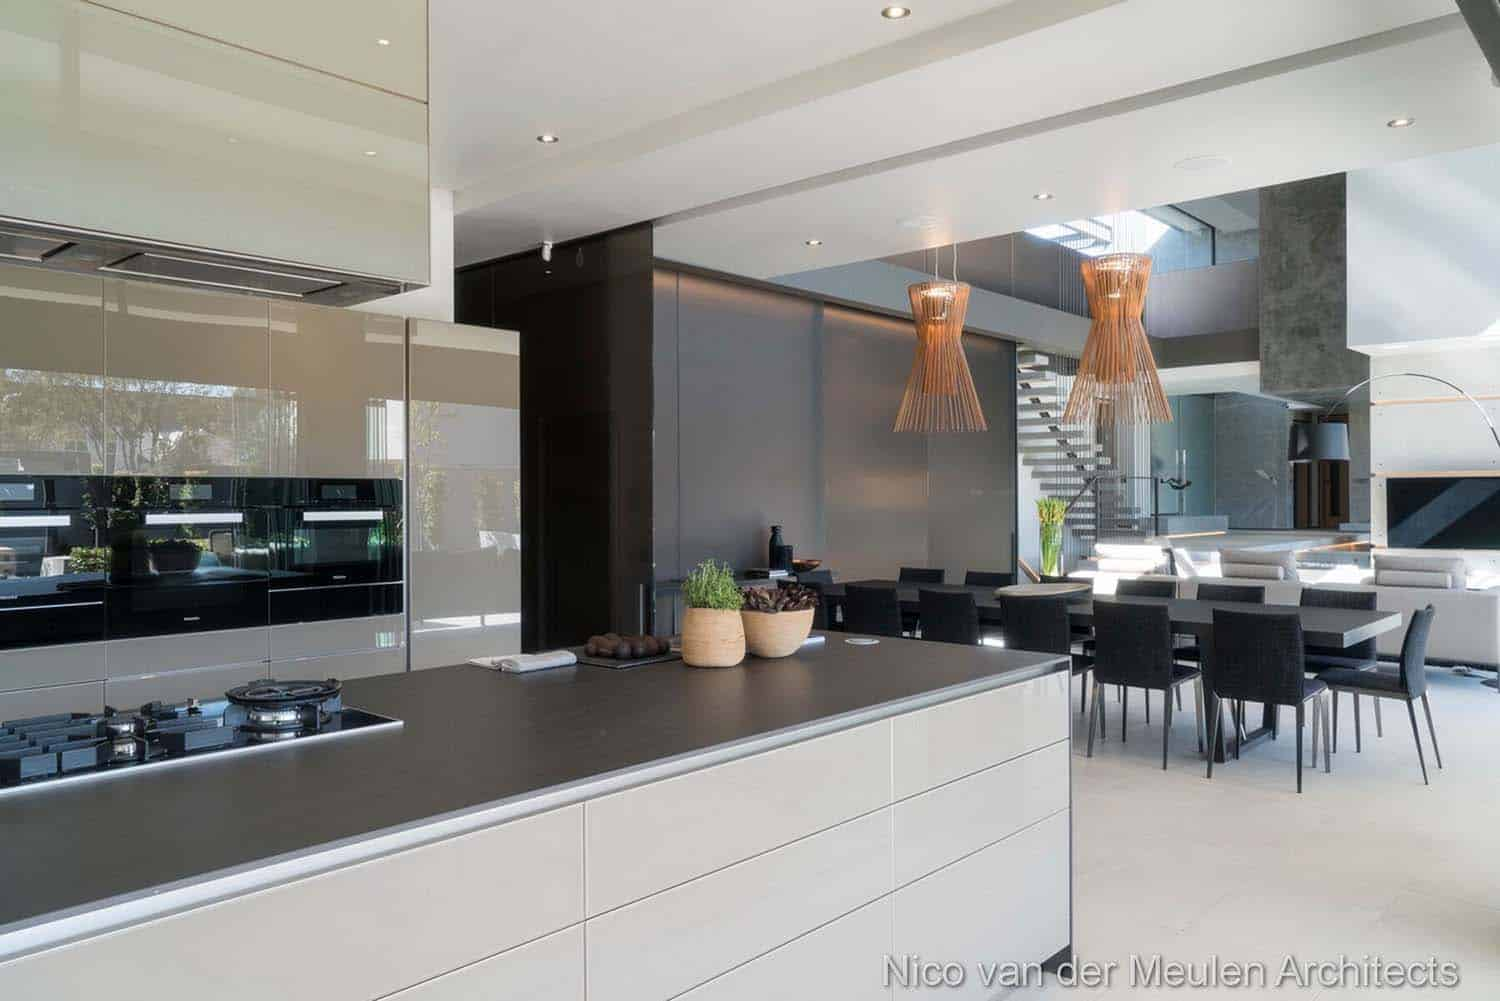 Forest Road Home-Nico van der Meulen Architects-24-1 Kindesign